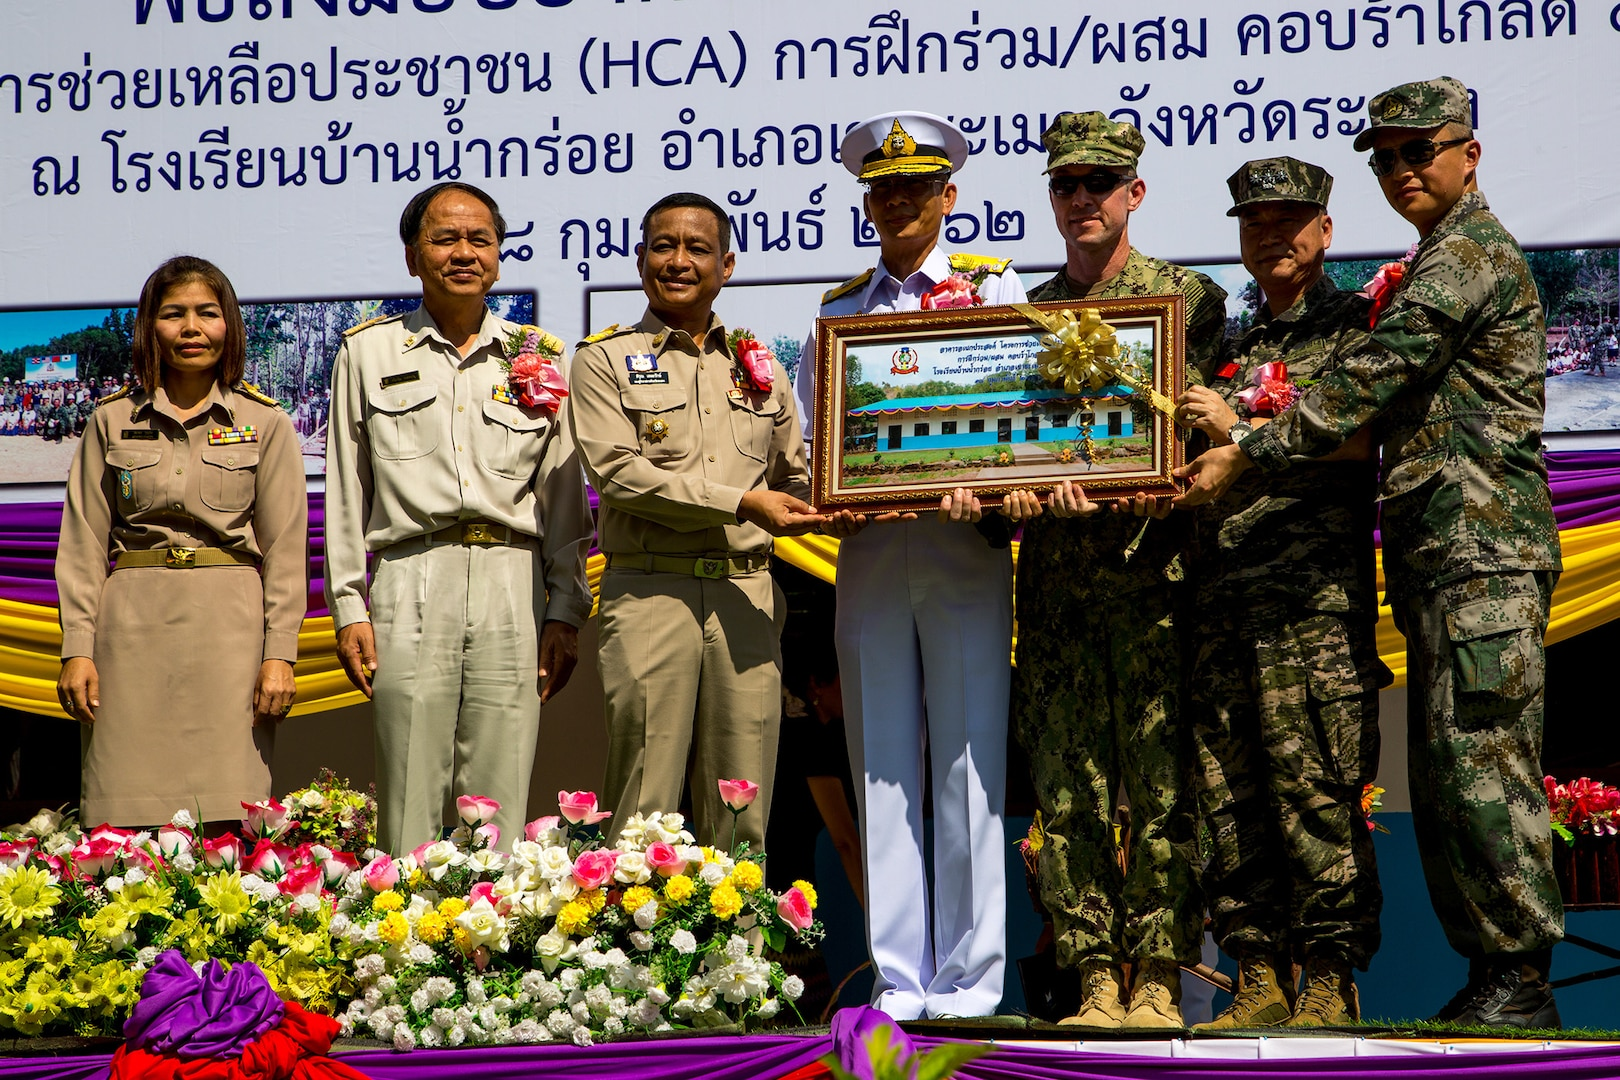 Cobra Gold 19: Four Nations Come Together to Build Classrooms, Showcasing Partnership